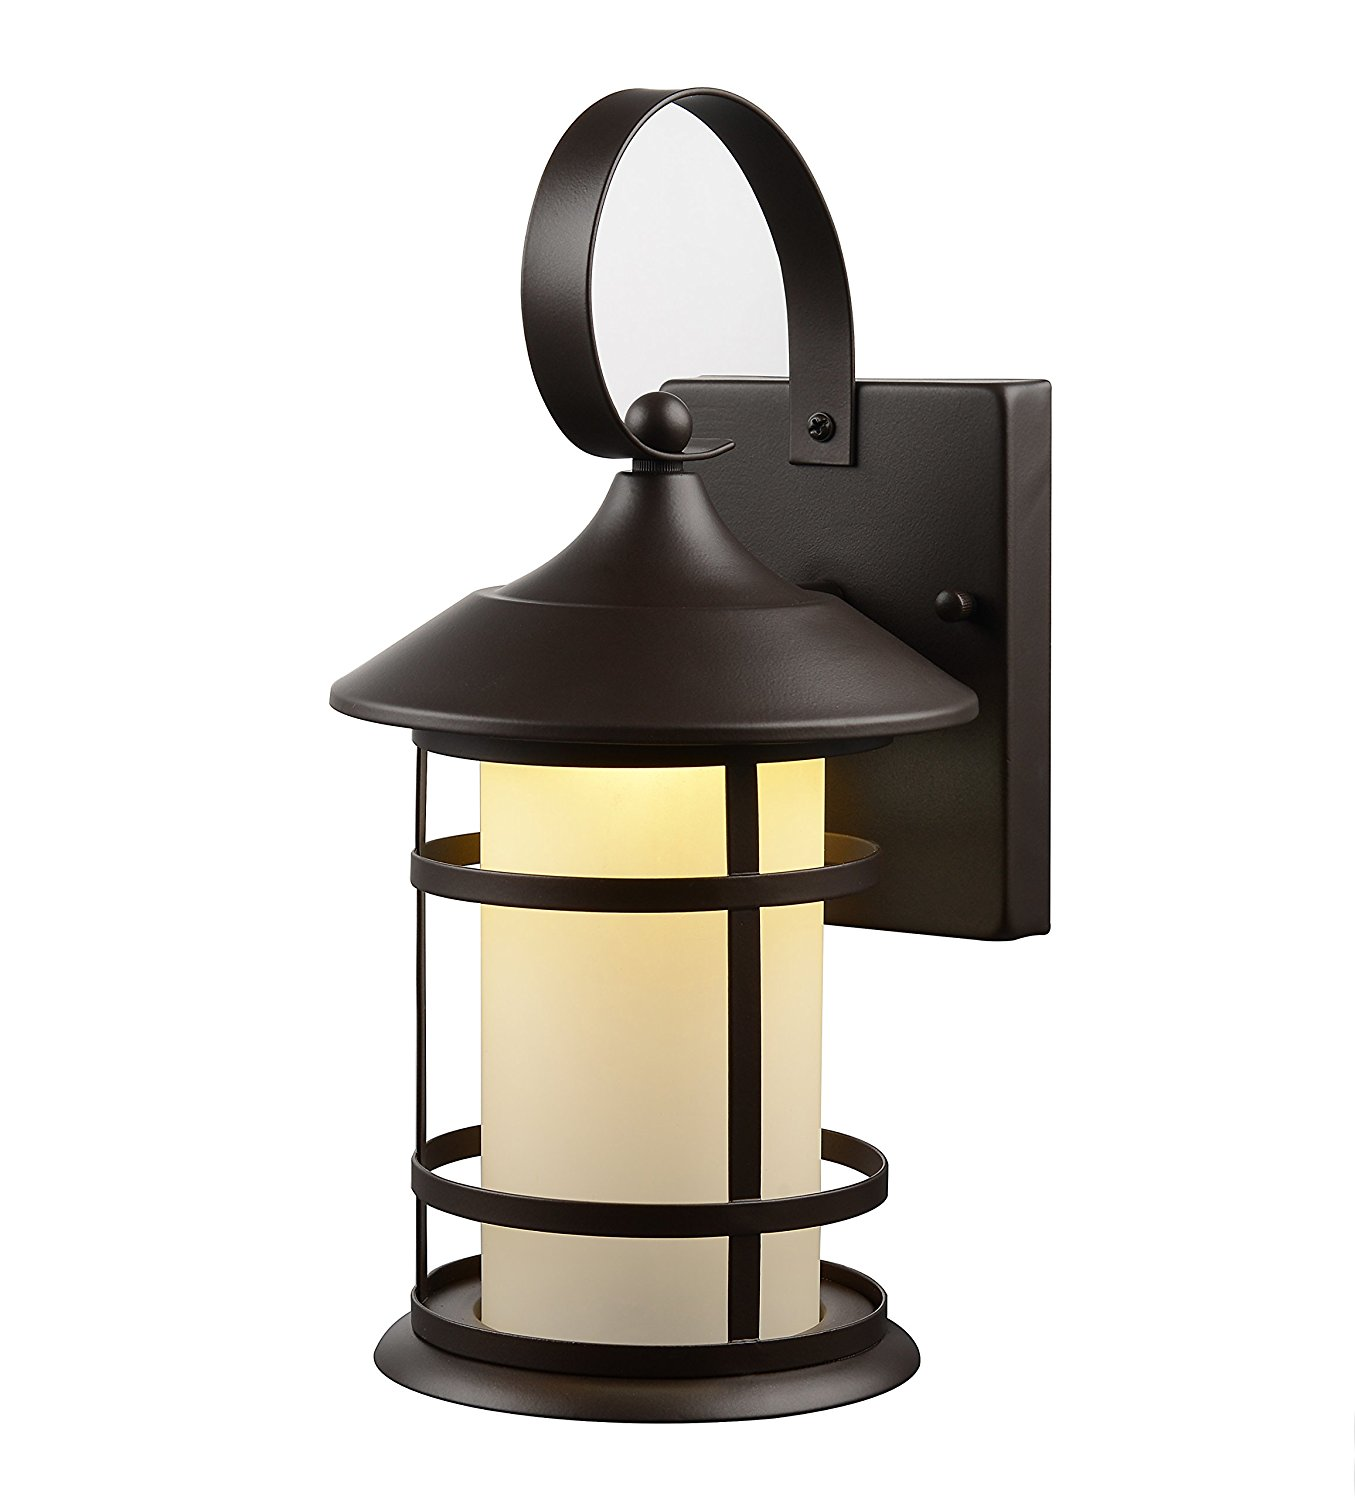 Hardware House LLC 21-2014 # 1-Light Lantern with Frosted Glass Lantern Wall Fixture with 1-Light Comes with Frosted Glass Uses (1) 10W Led Light Bulb-Included